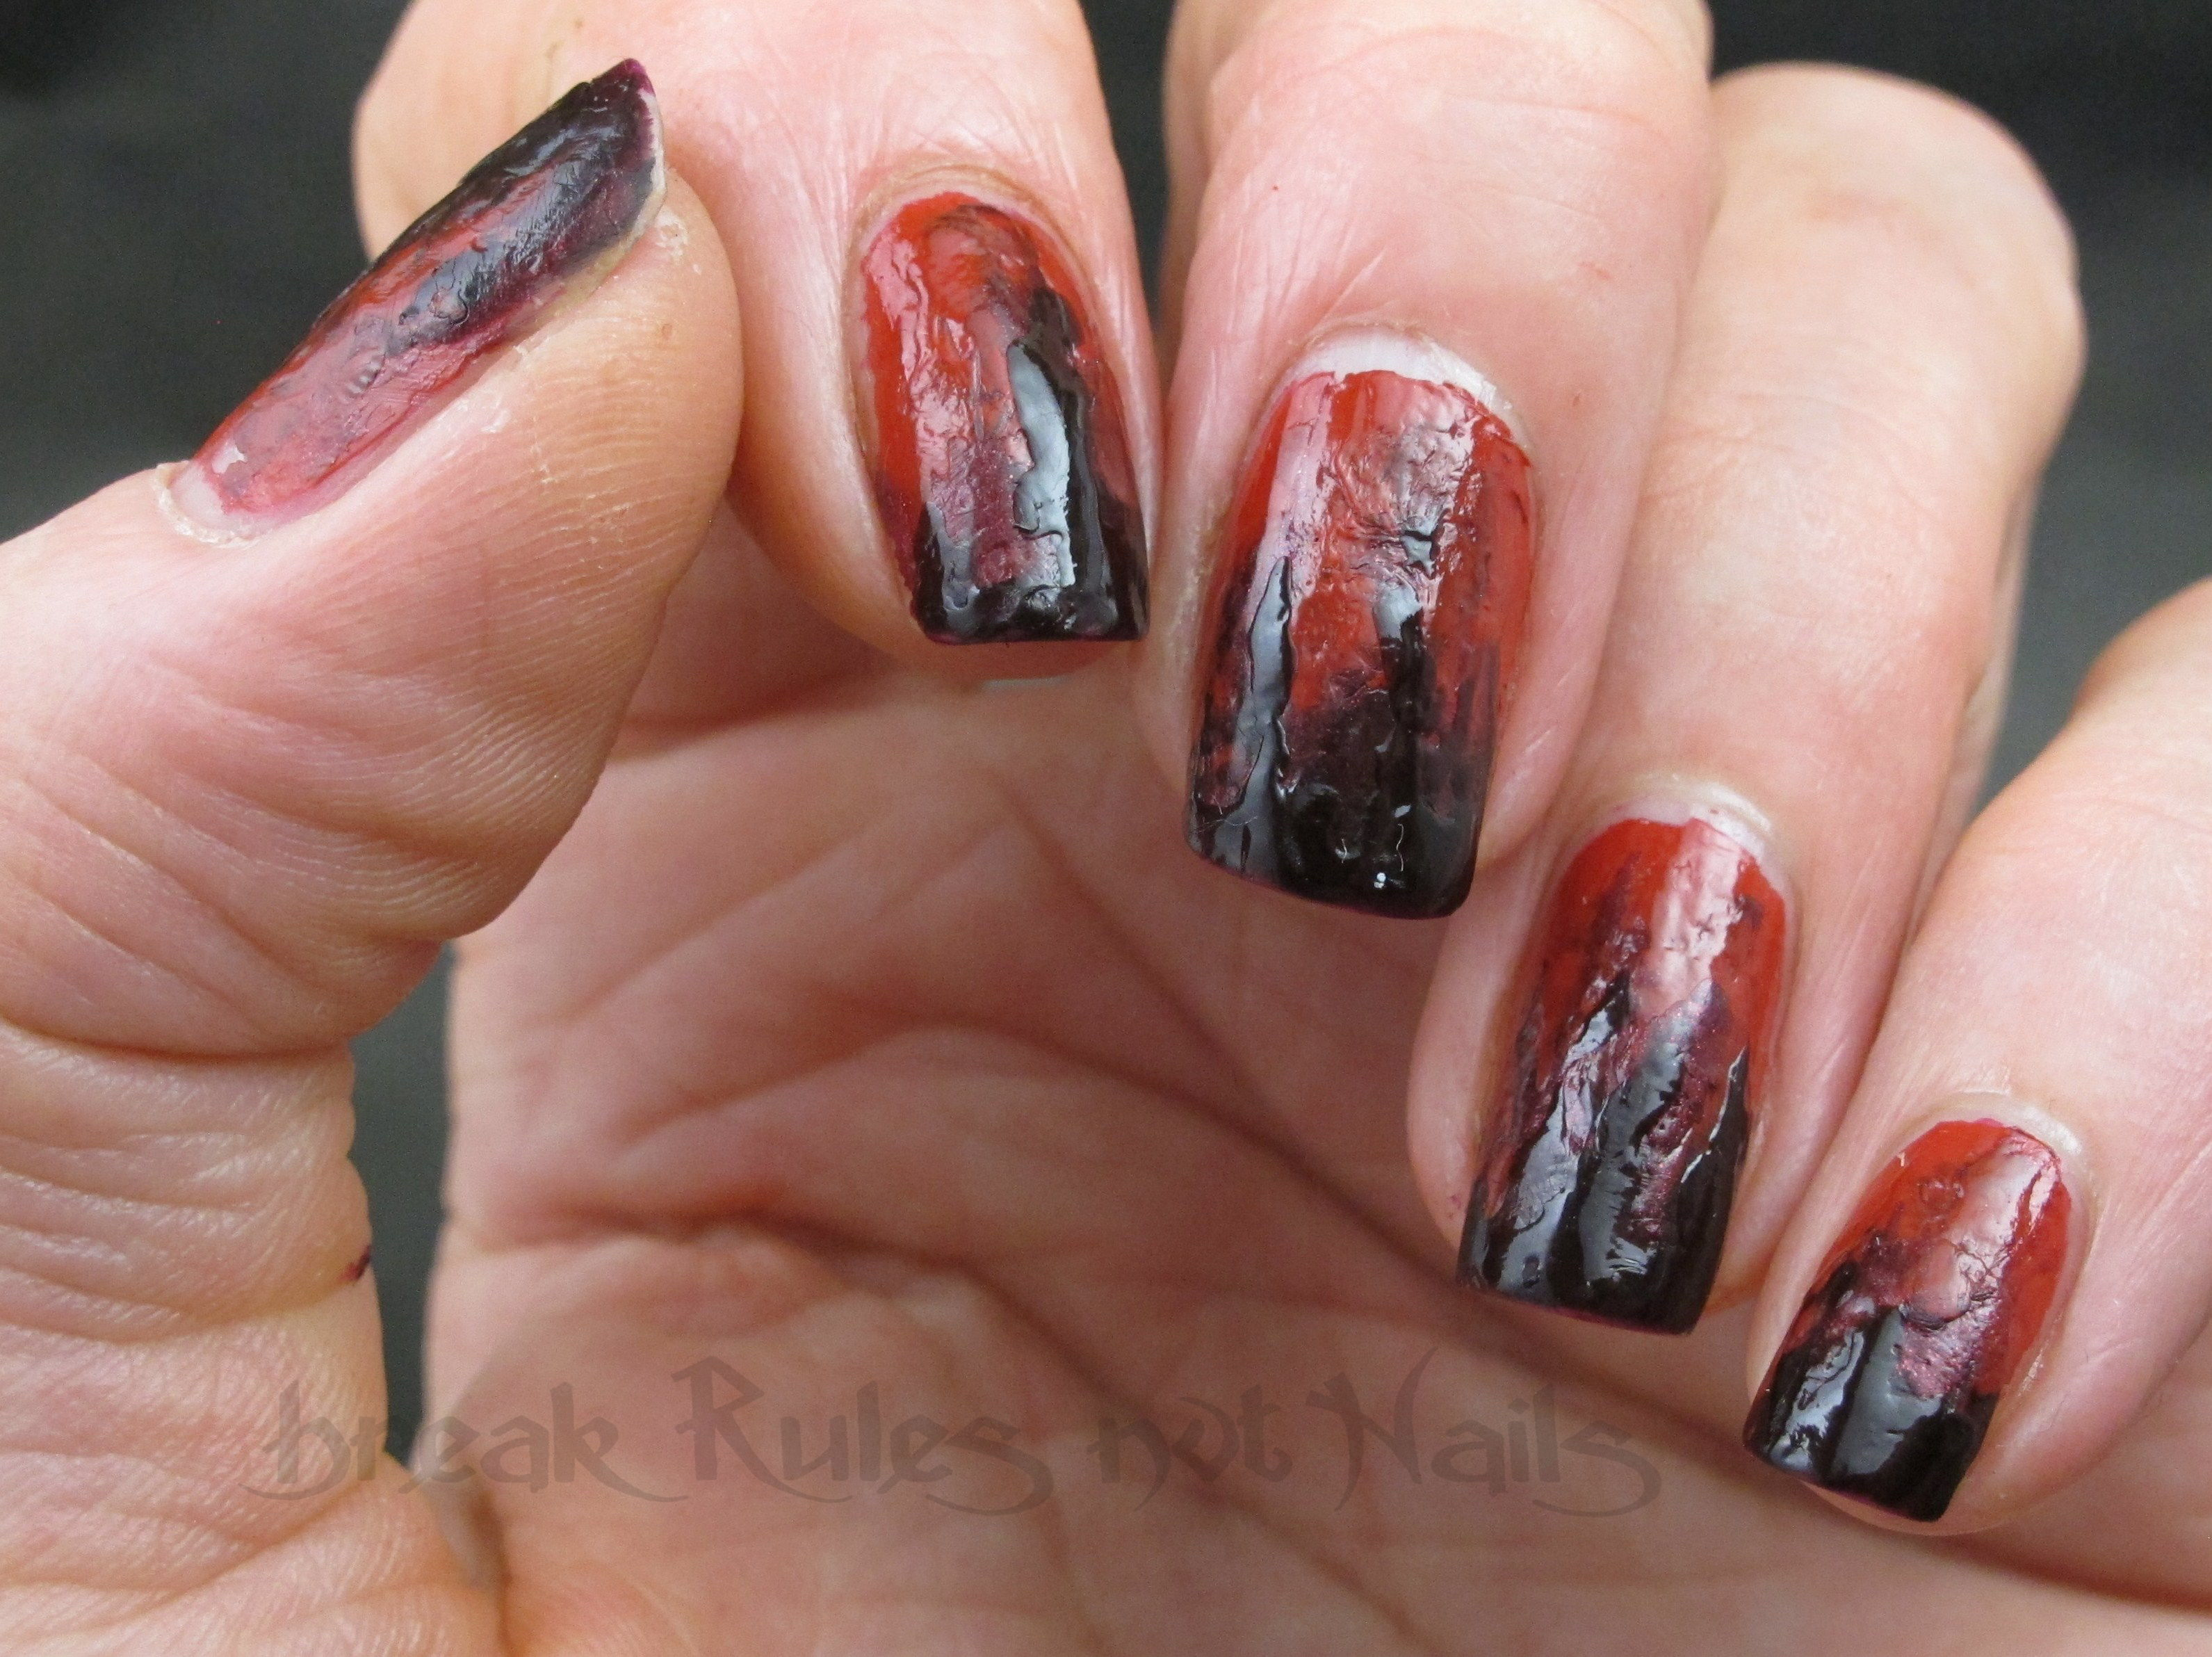 Zombie Nail Art Break Rules Not Nails